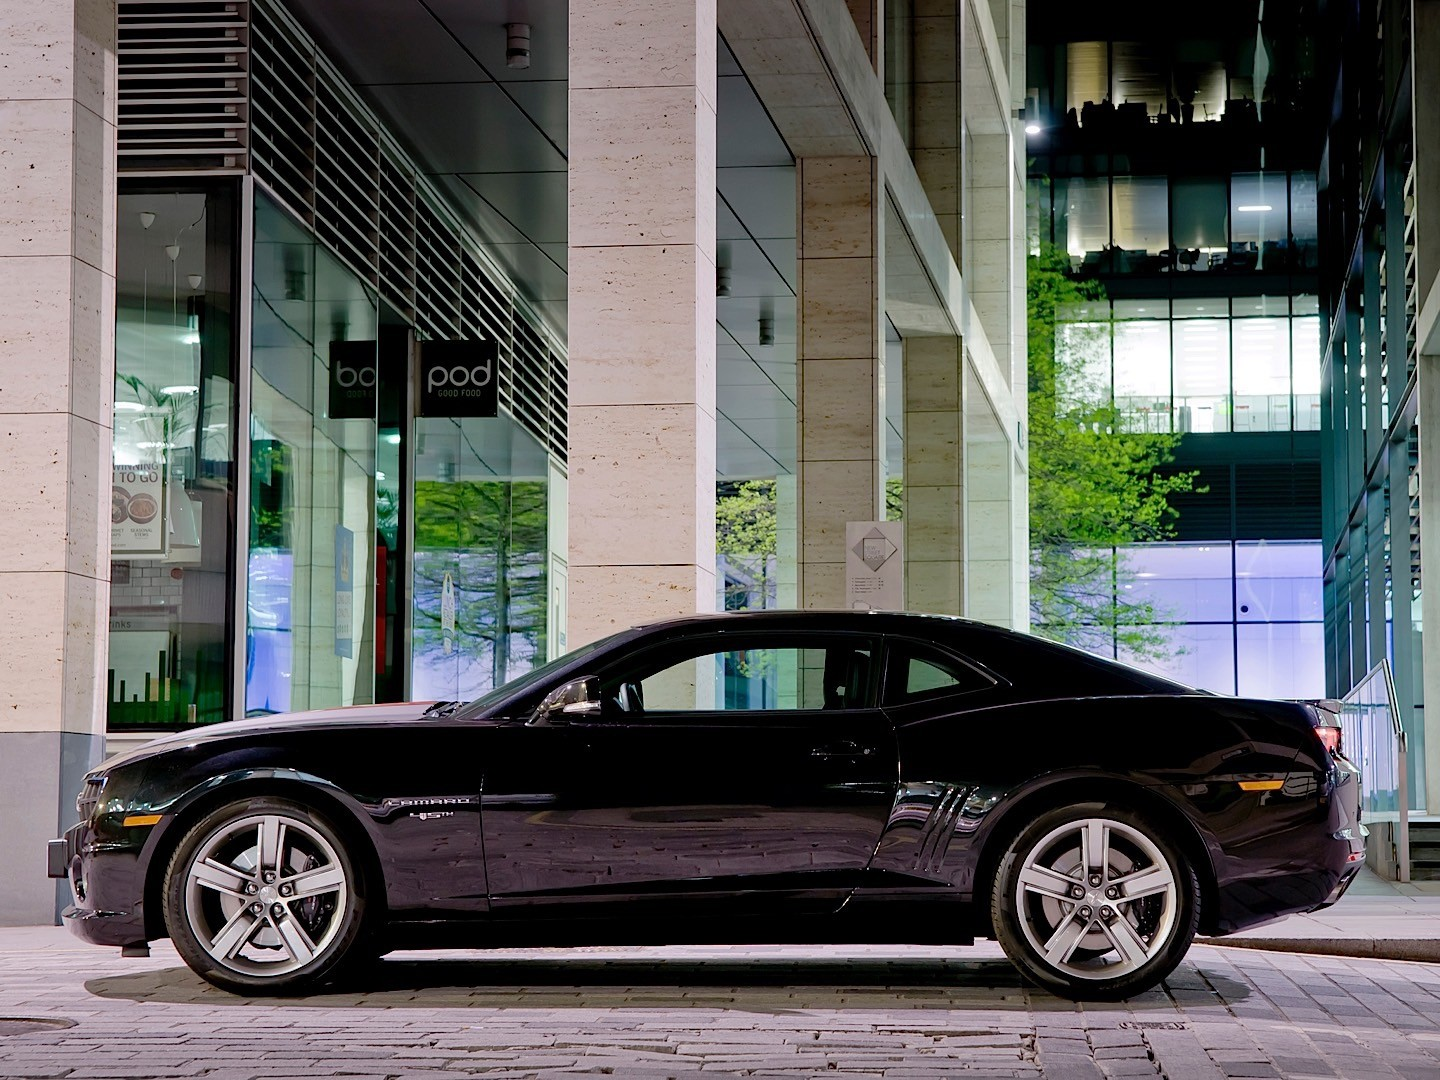 Design Aerodynamic Package For 2016 Chevrolet Camaro Photo Gallery   2017 - 2018 Best Cars Reviews